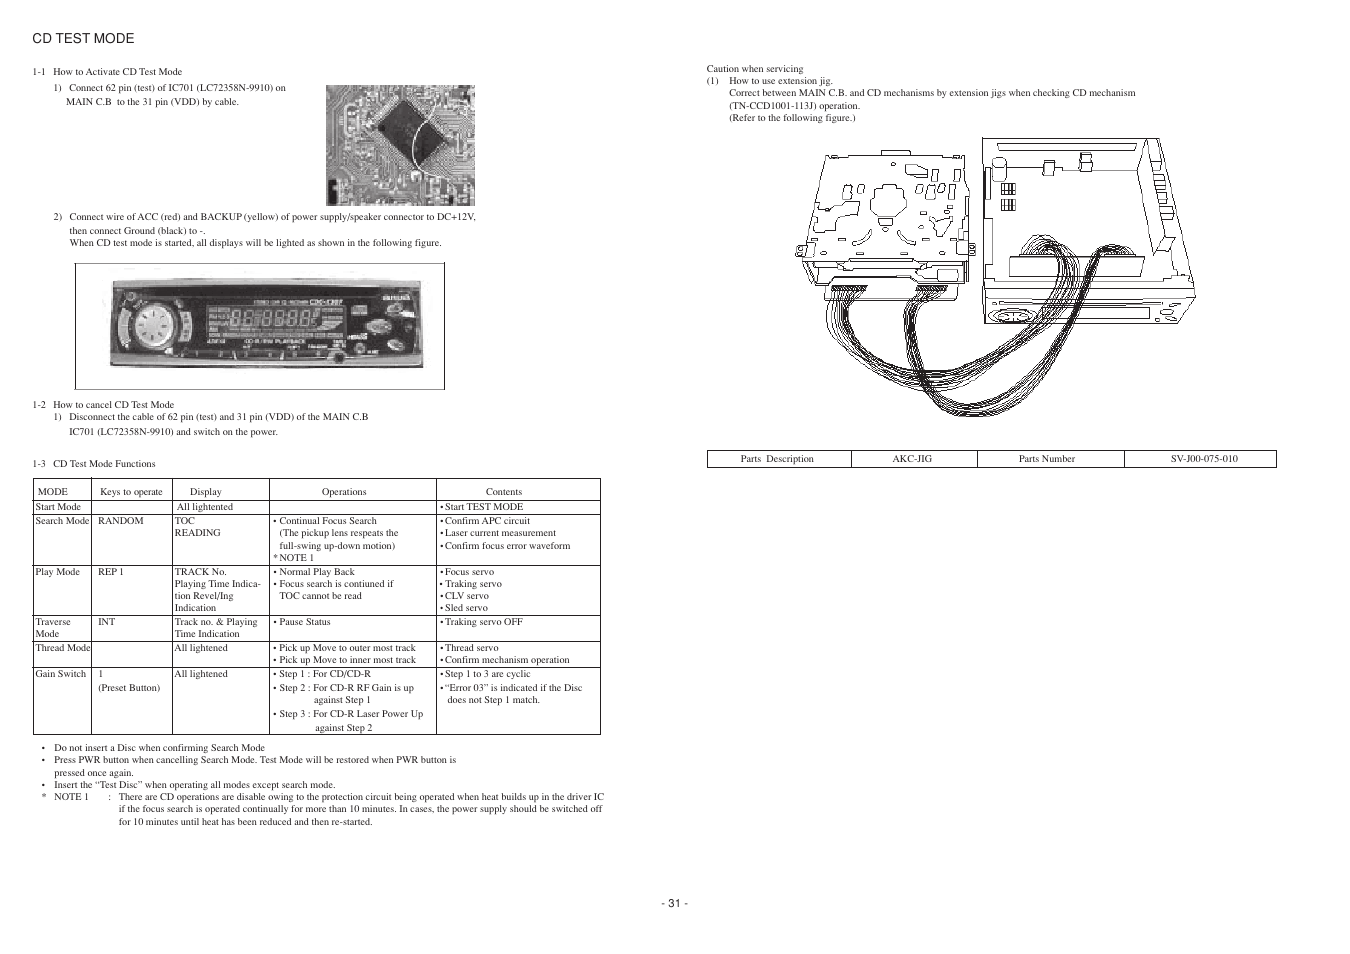 hight resolution of cd test mode aiwa cdc z107 user manual page 31 36